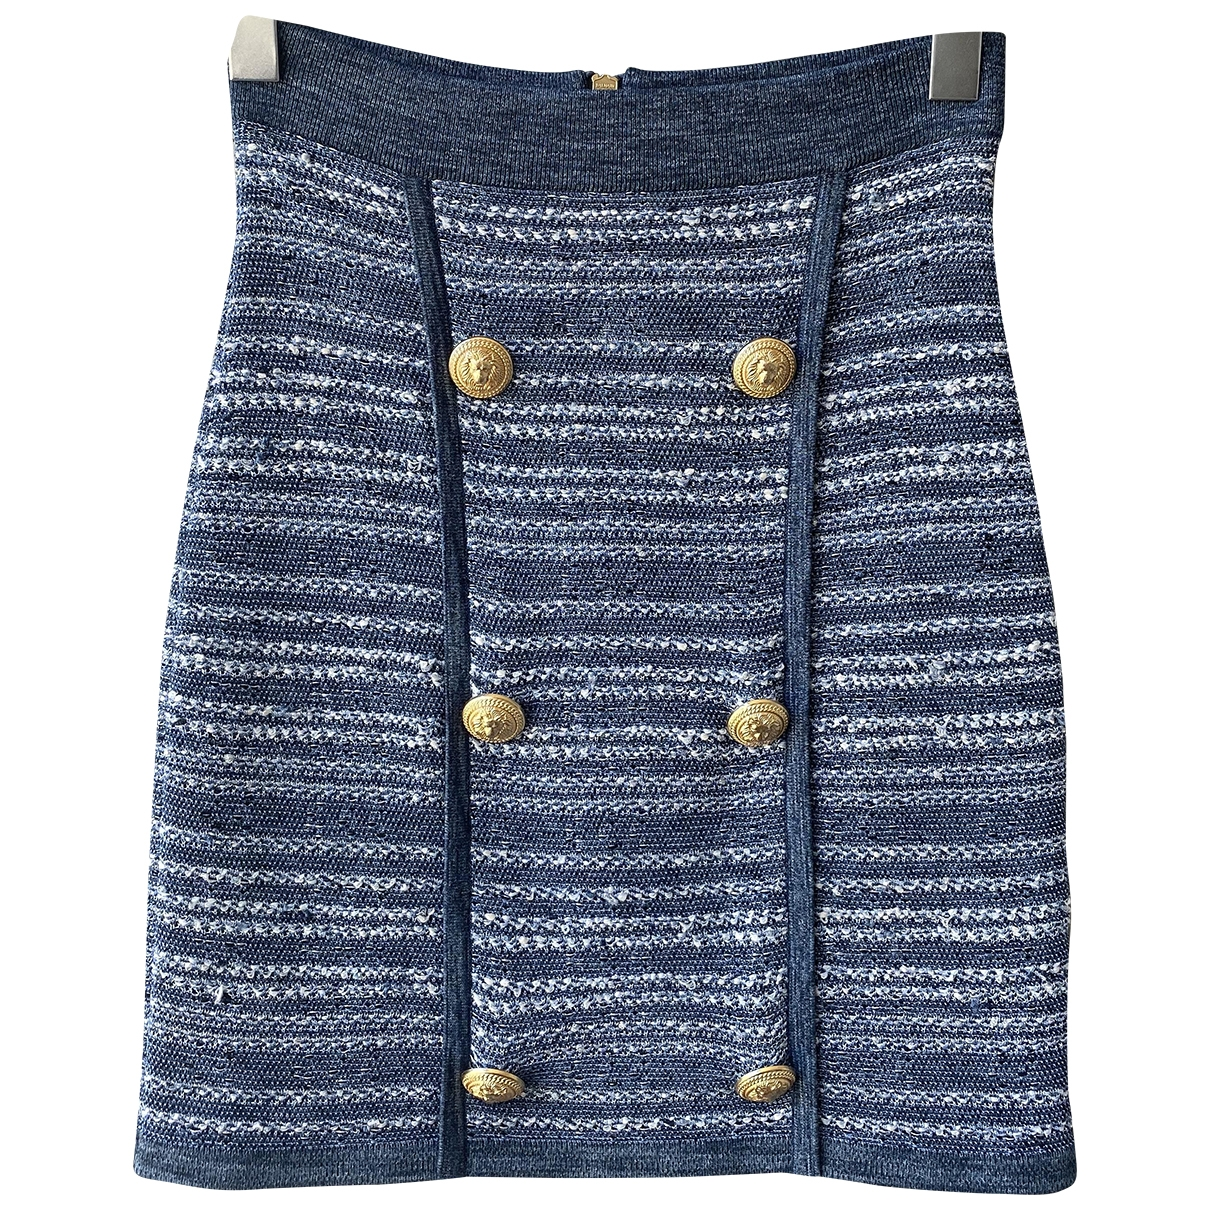 Balmain \N Blue skirt for Women 36 FR